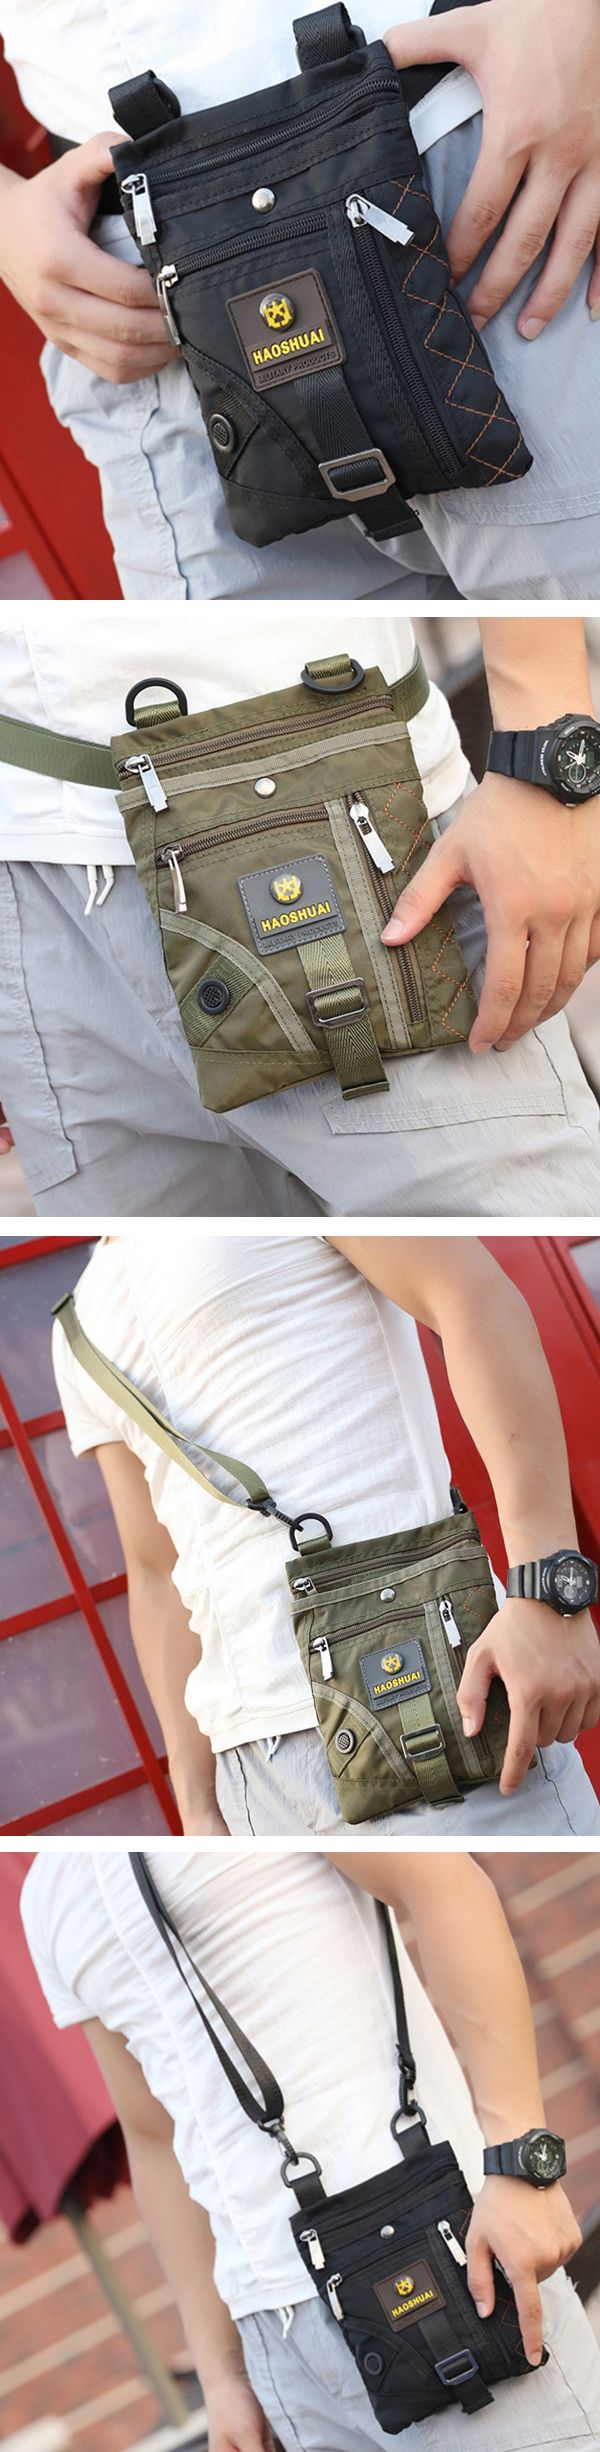 Men Nylon Waterproof Vertical Crossboby Bag Light Weight Casual Travel Shoulder Bag Weekend Bag